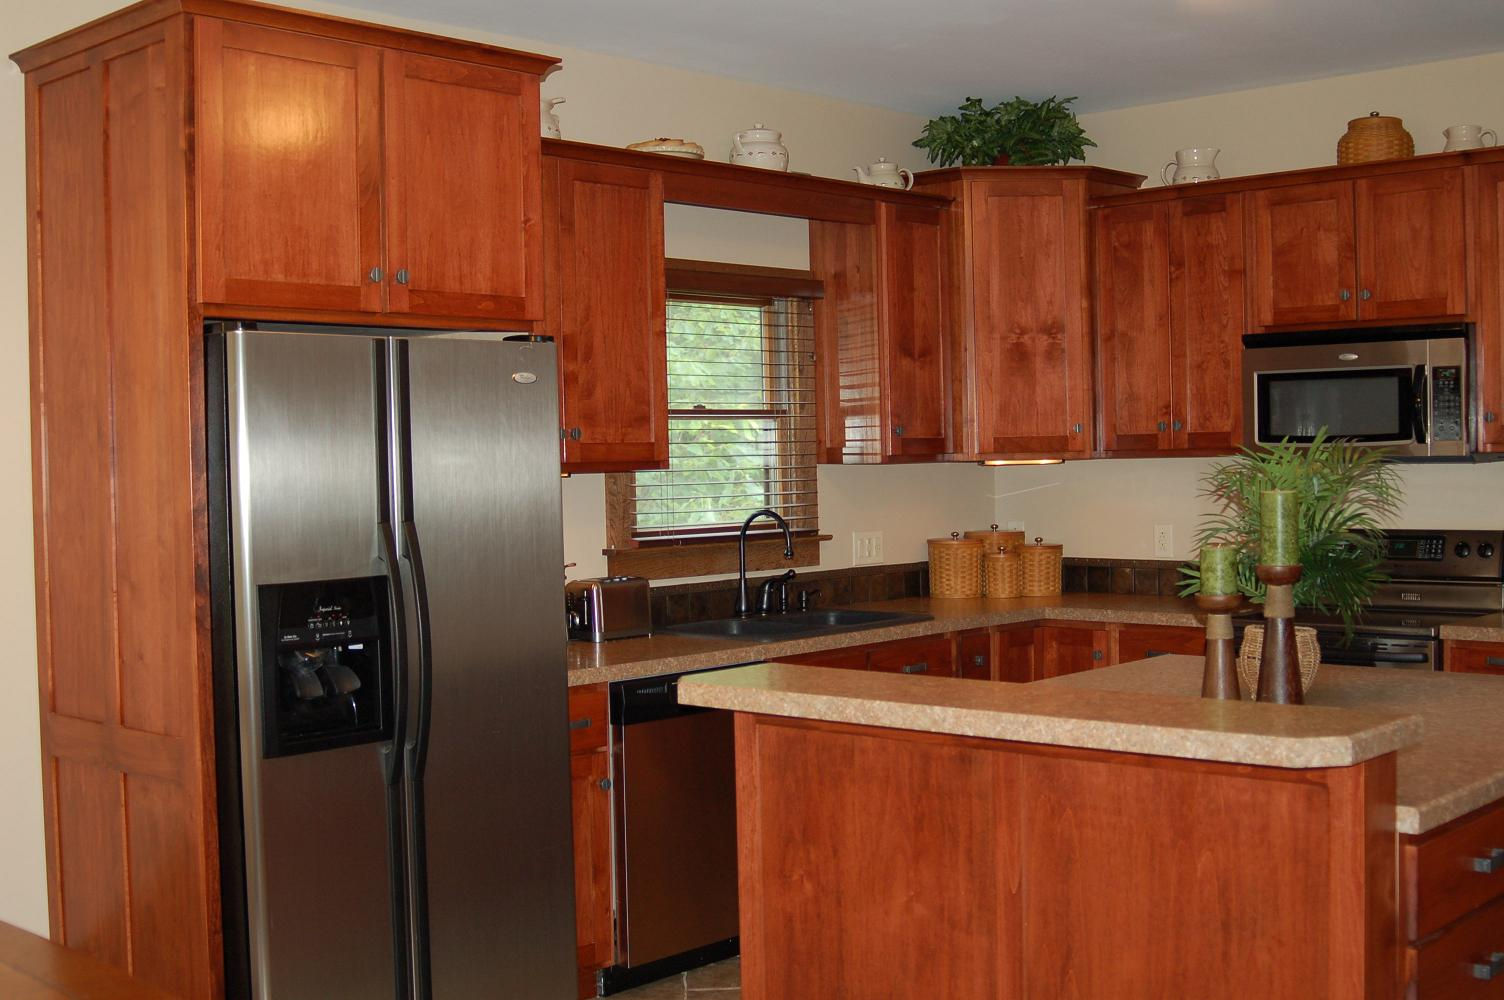 Charming Brown Wooden Kitchen Cabinet With Wilsonart Laminate Countertops And Silver Fridge For Kitchen Decor Ideas